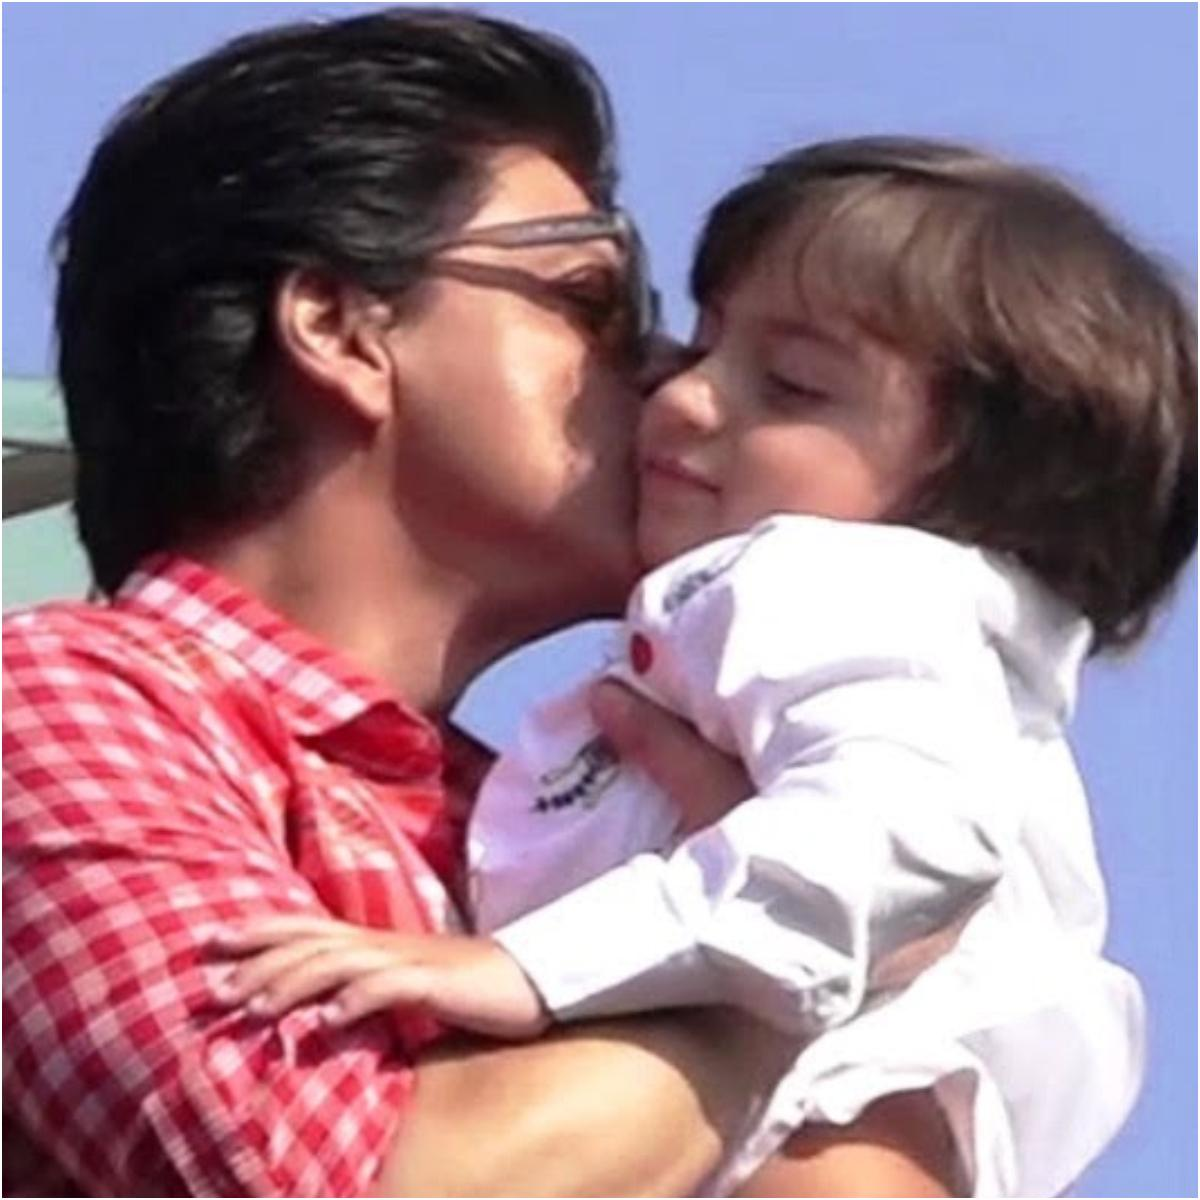 Shah Rukh Khan's adorable photos with his children will melt your heart